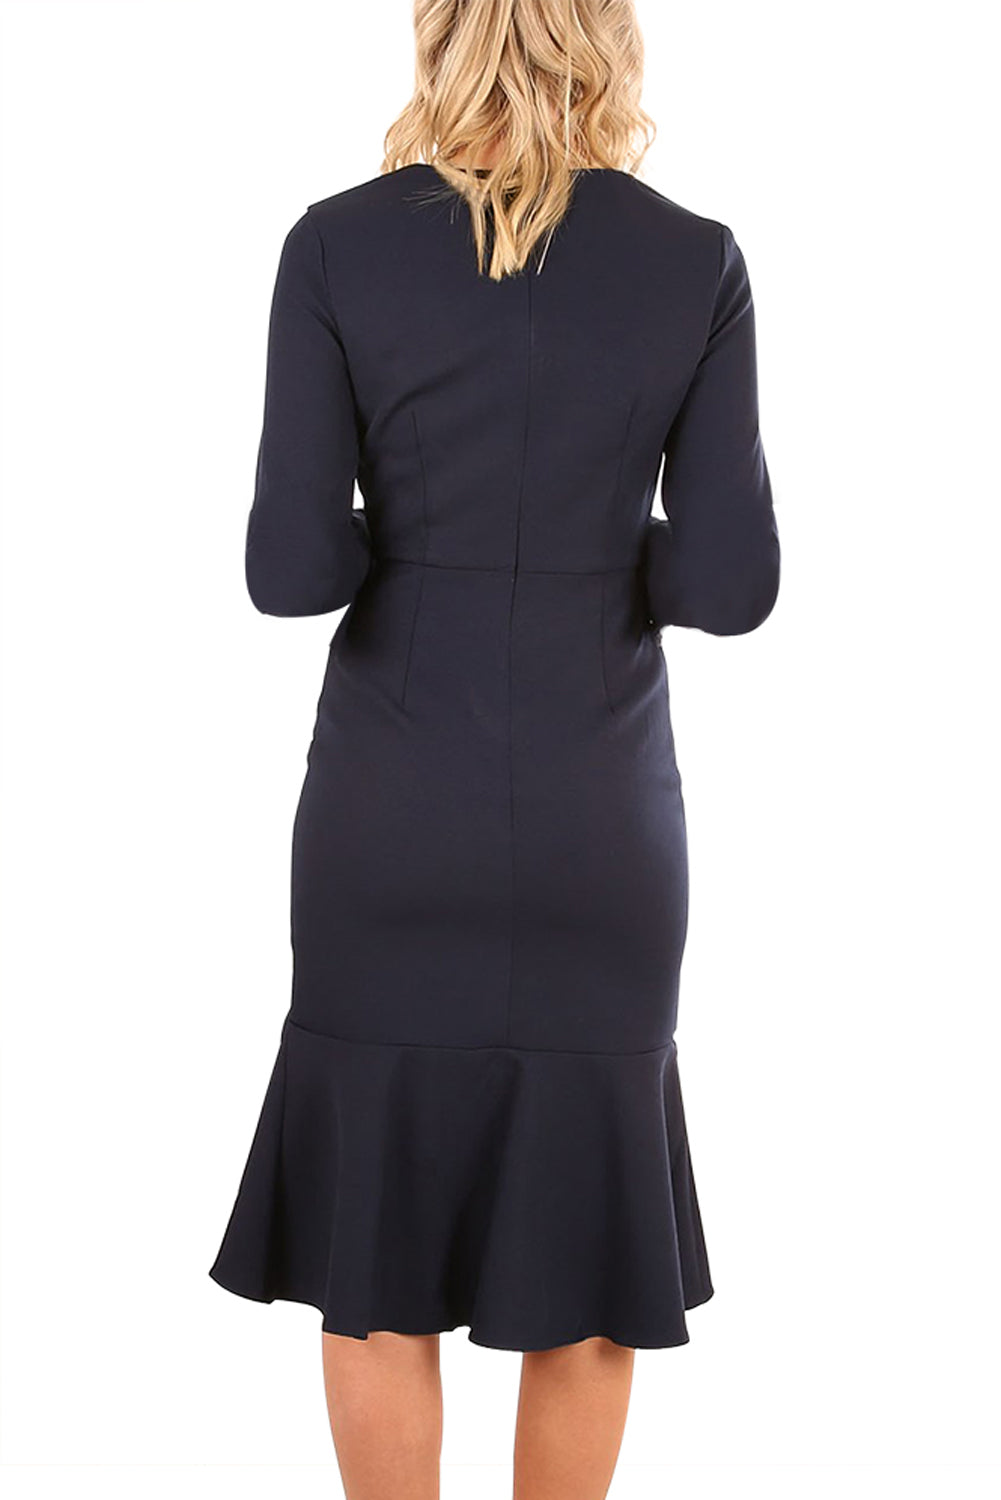 Her Fashion Black Delicate Ruffle Accent Bell Sleeve Popular MidiDress